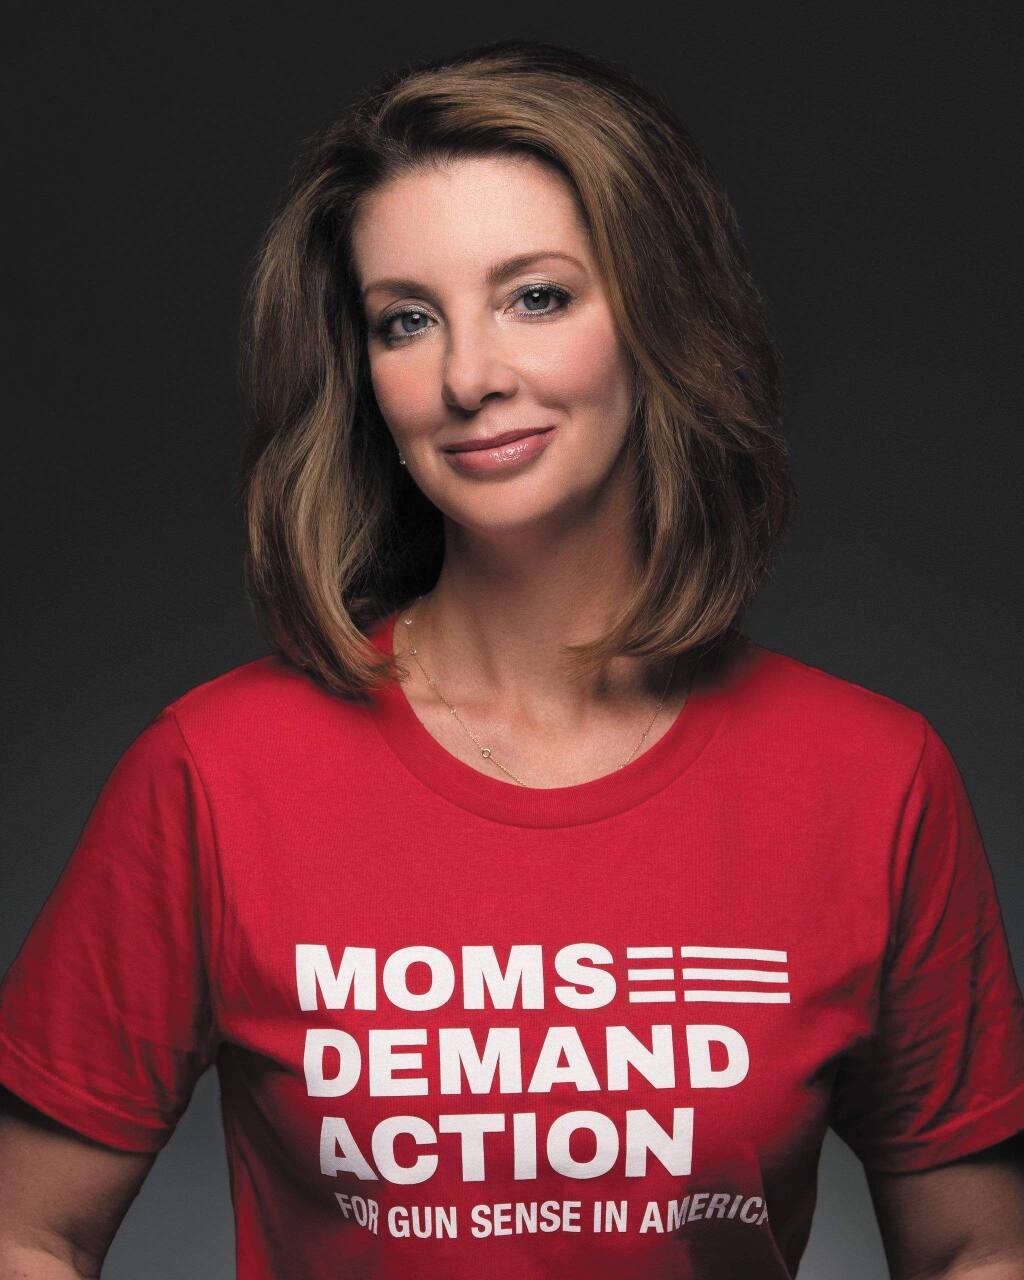 Shannon Watts, founder of Moms Demand Action and author of 'Fight Like a Mother,' will speak Tuesday, June 11, at the invitation of Sonoma Speaker Series.Photo by Christopher Langford